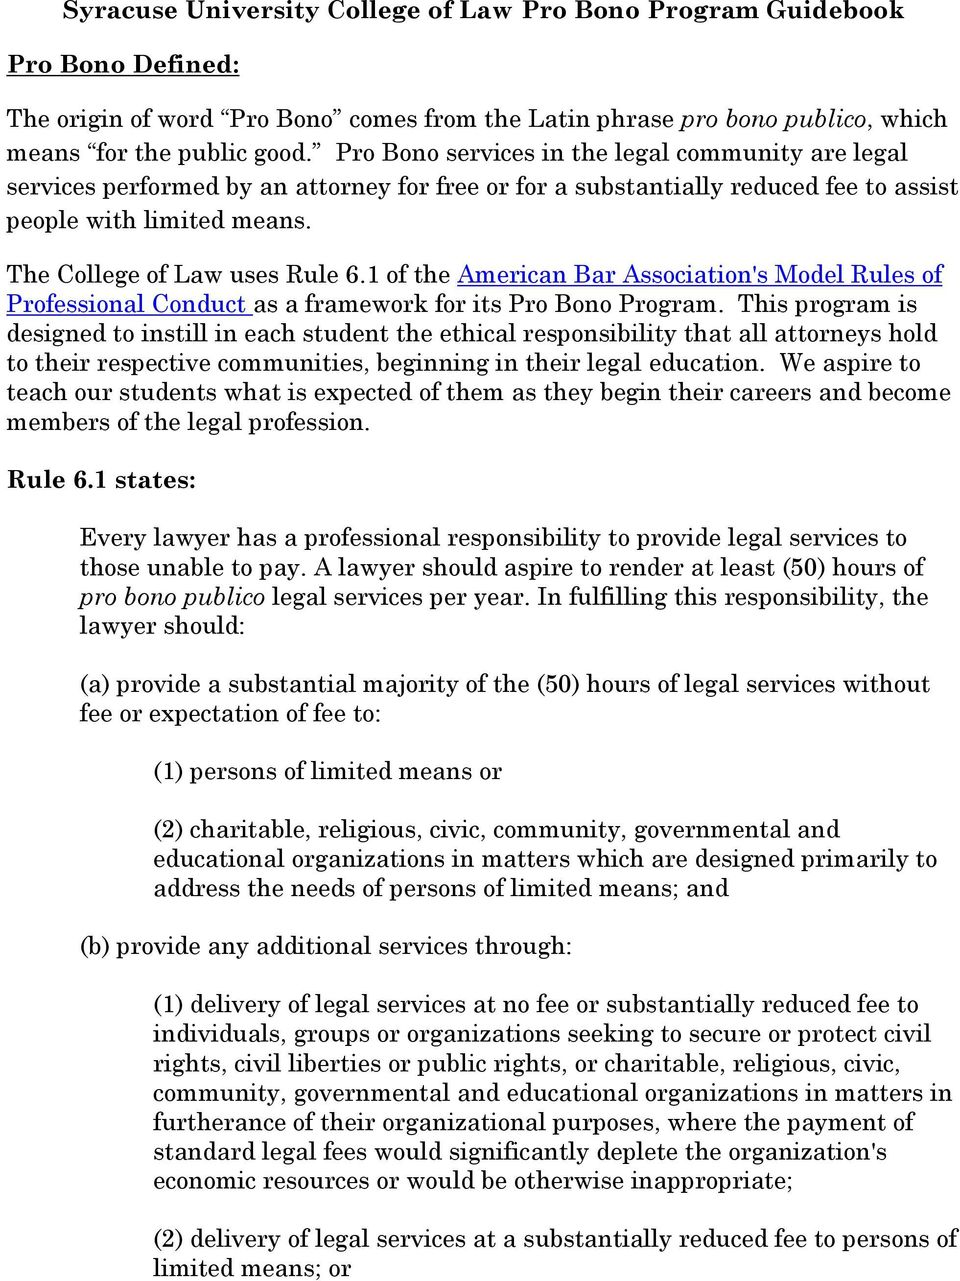 1 of the American Bar Association's Model Rules of Professional Conduct as a framework for its Pro Bono Program.